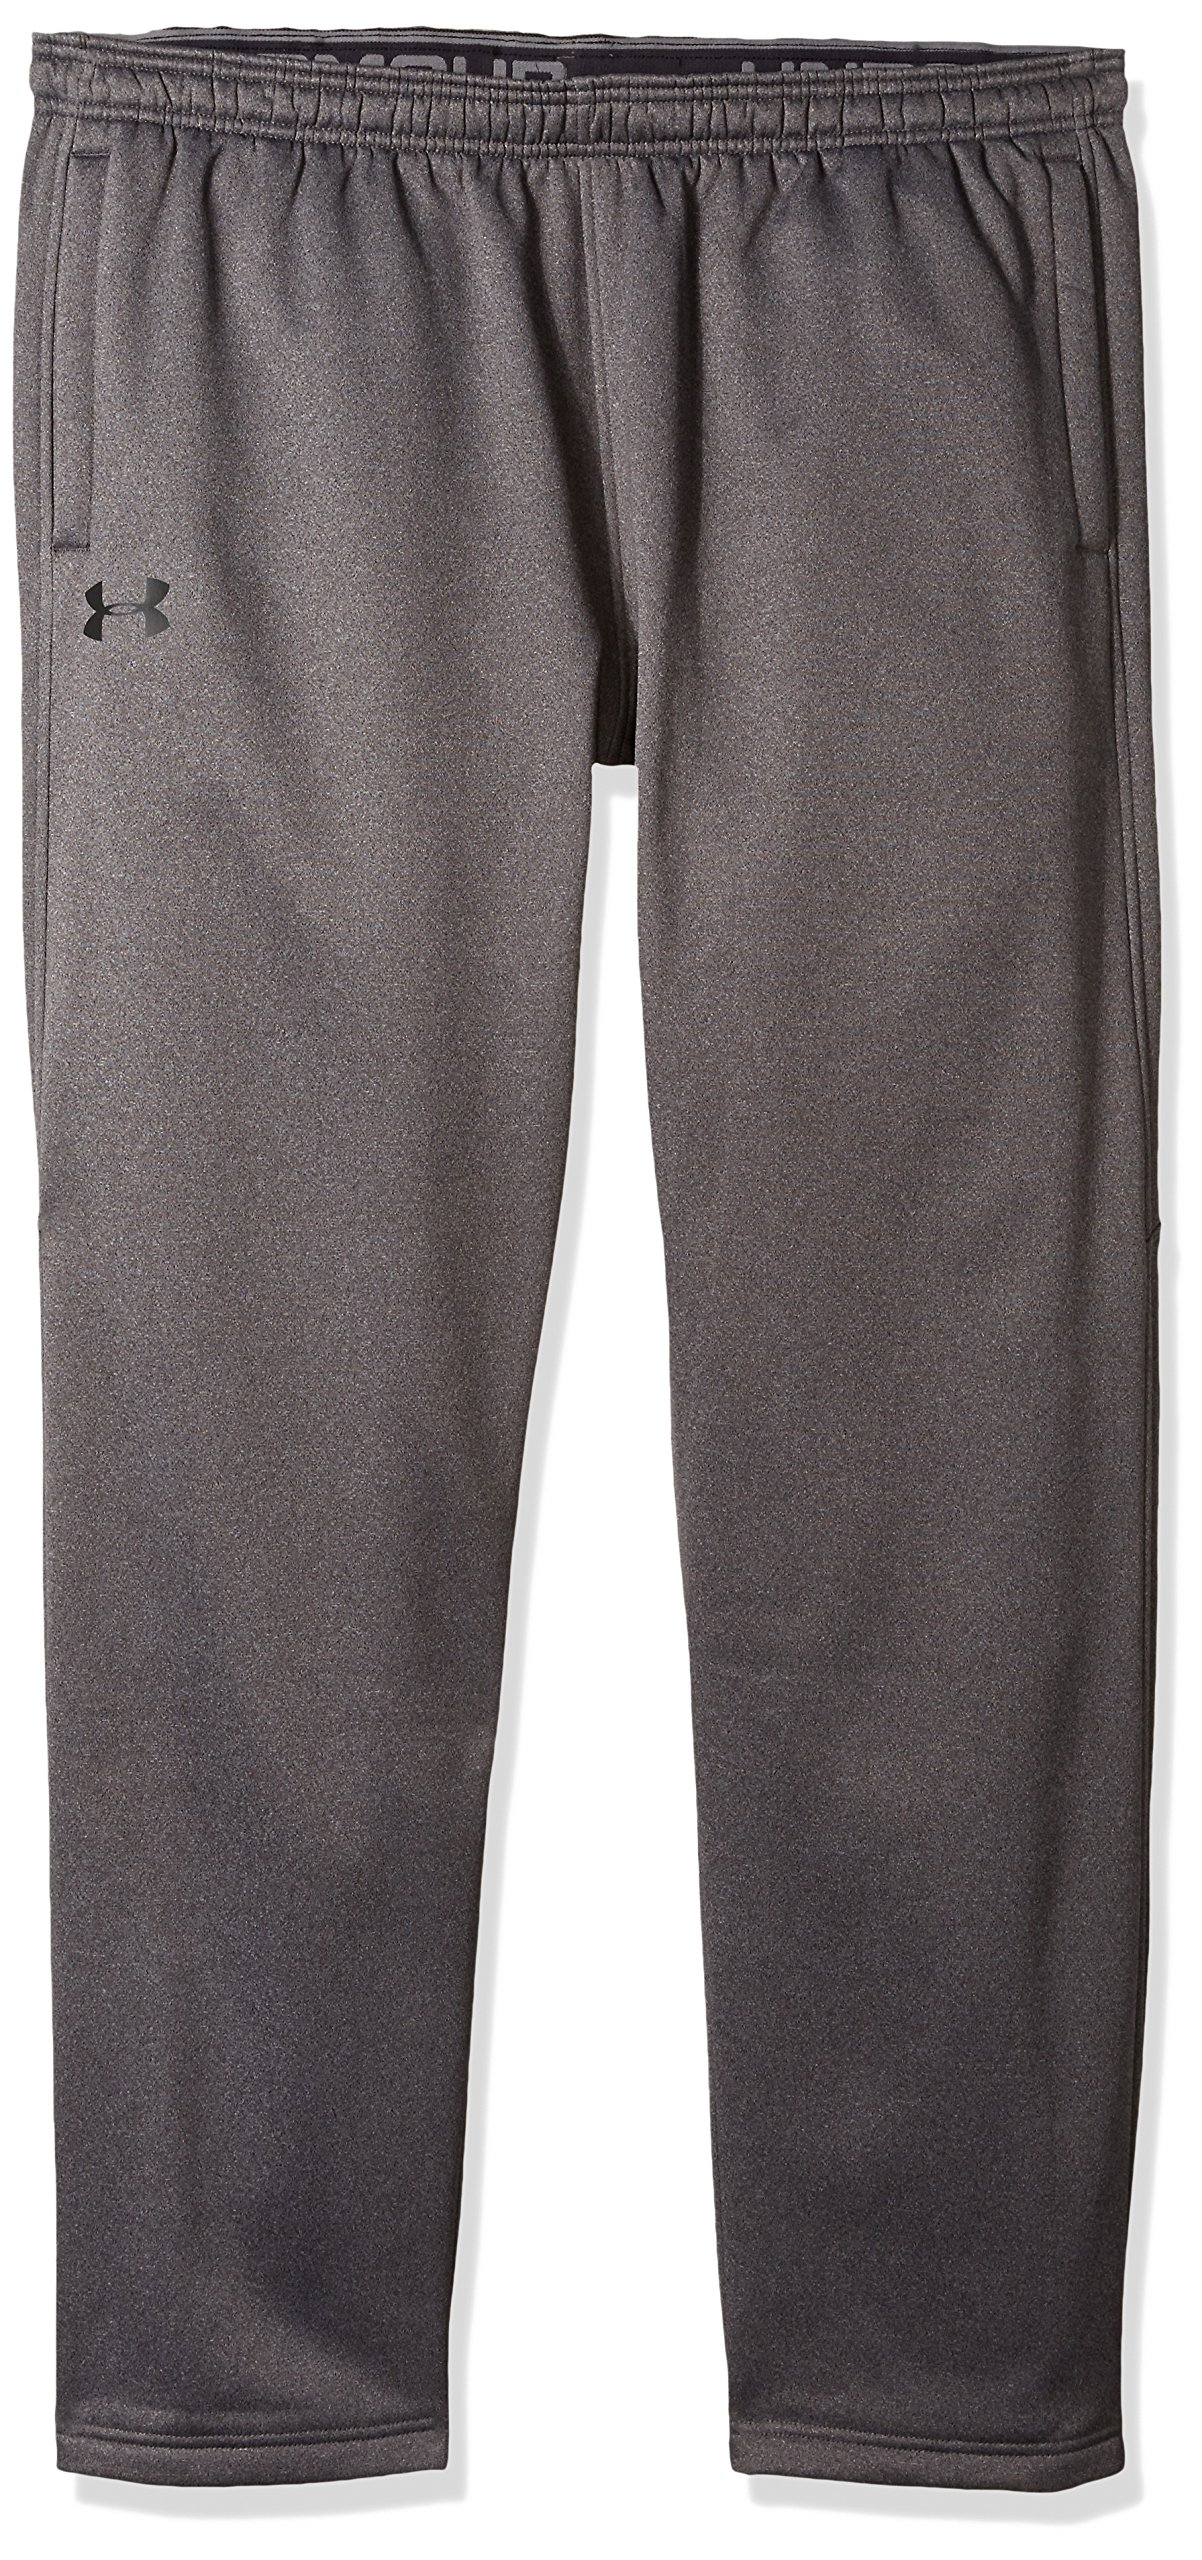 watch 106aa b06bb Galleon - Under Armour Men s Storm Armour Fleece Pants, Carbon Heather Black,  3X-Large Tall